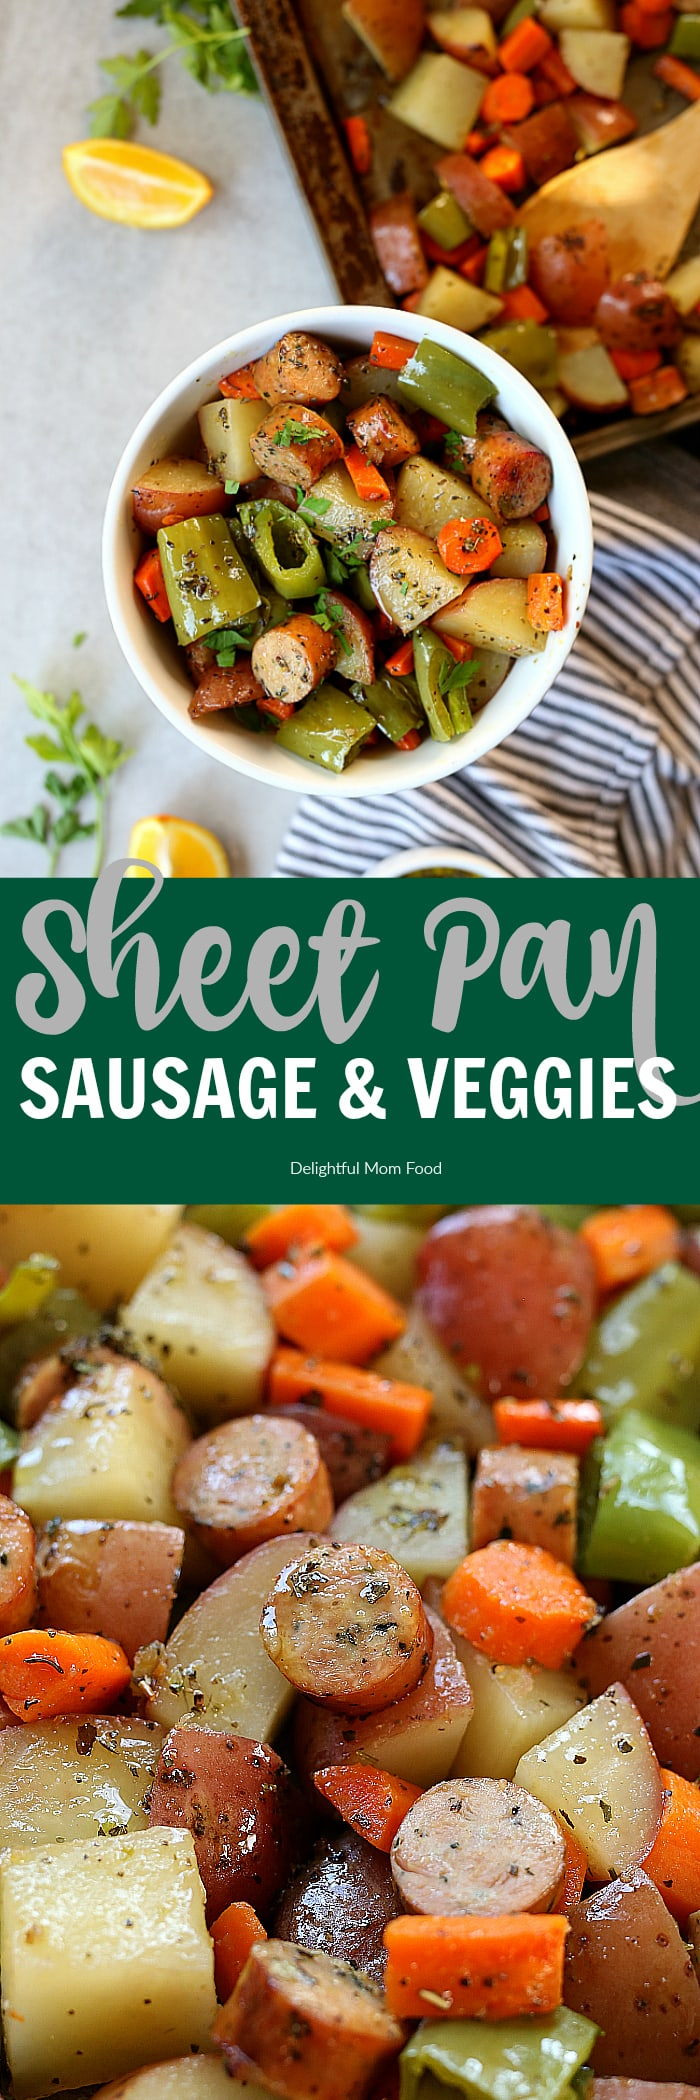 Sheet pan sausage and vegetables are an easy weeknight dinner you will want to keep it on repeat! Loaded with slices of chicken sausage and chunks of potatoes, carrots, green peppers and a savory marinade to crisp the veggies into mouthwatering perfection! #quick #easy #glutenfree #grainfree #sausage #carrot #potato #greenpeppers #recipe #healthy #sheetpan | Recipe at delightfulmomfood.com